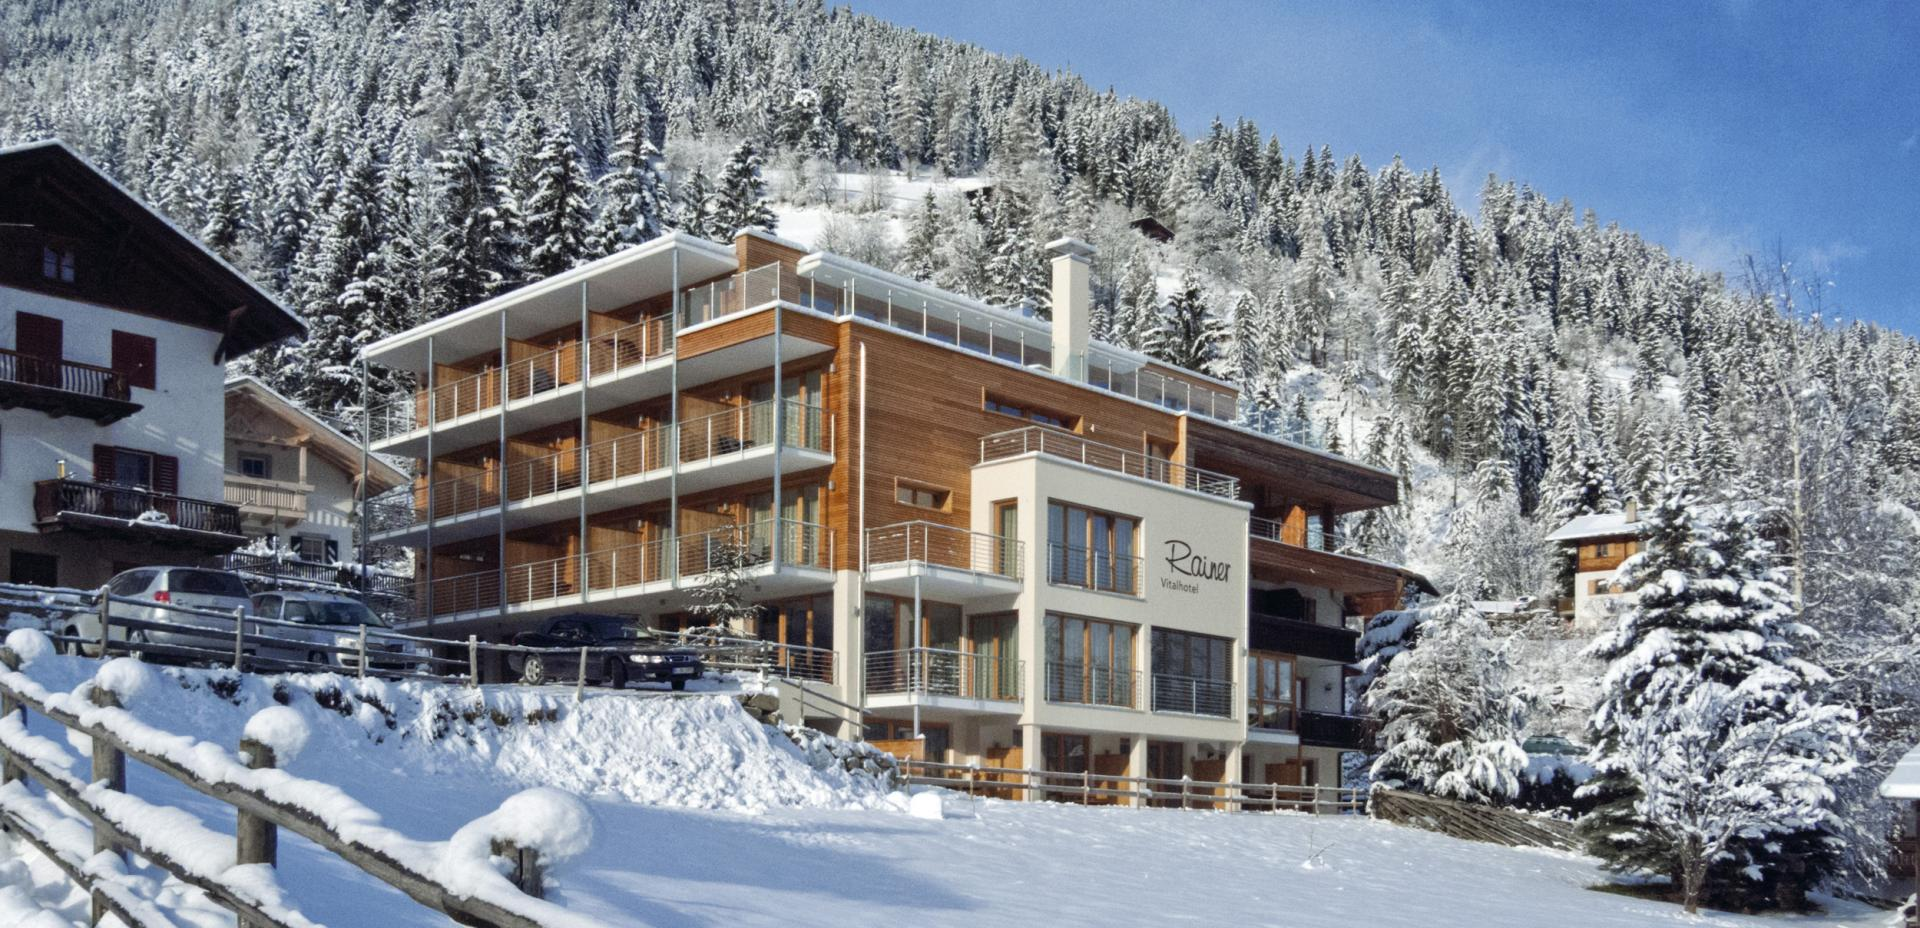 Hotel Rainer im Winter